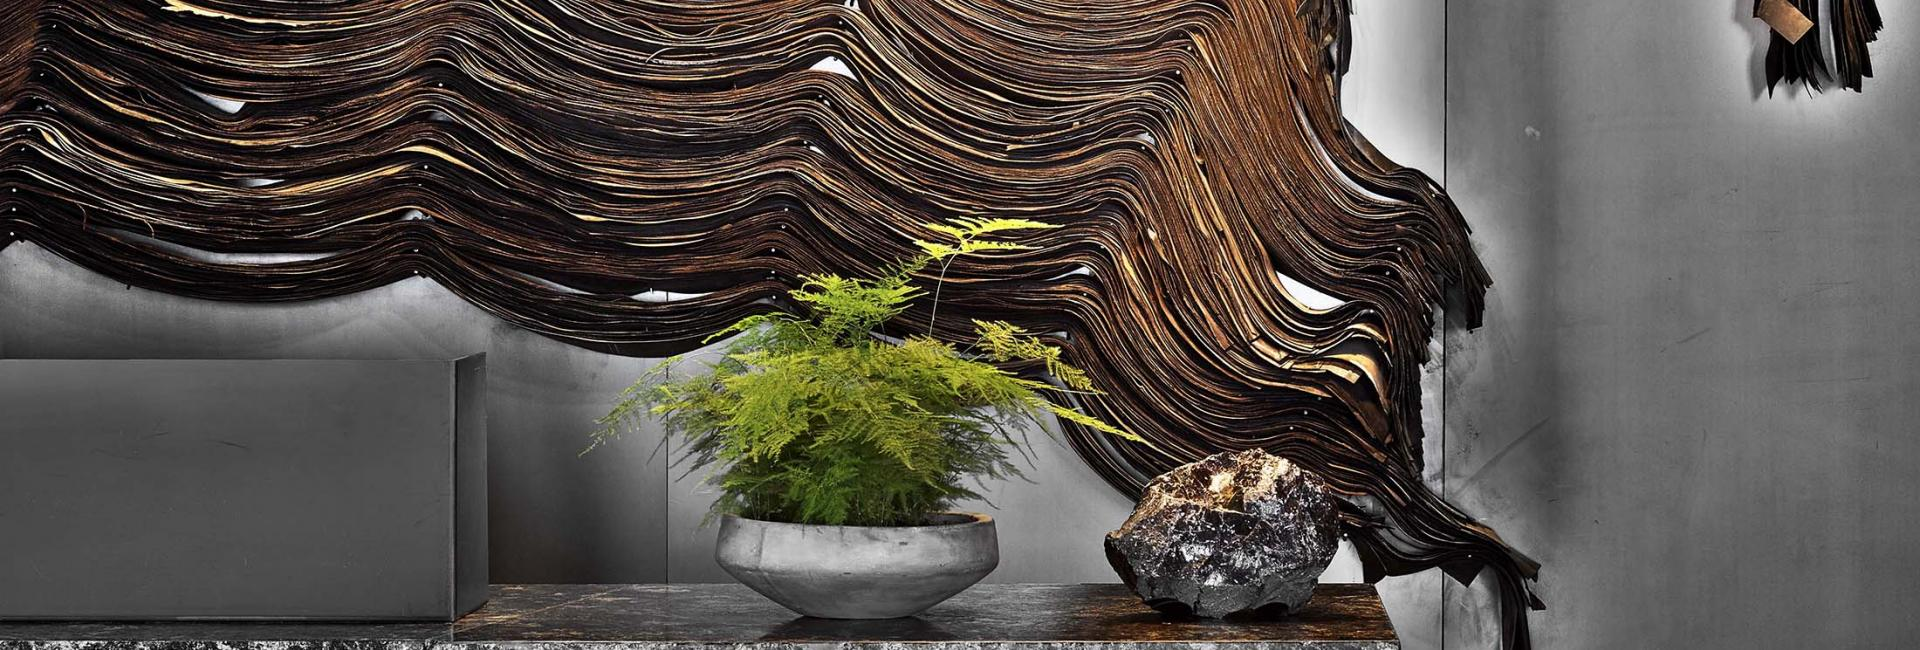 Abstract wall decor behind a marble front lobby desk.